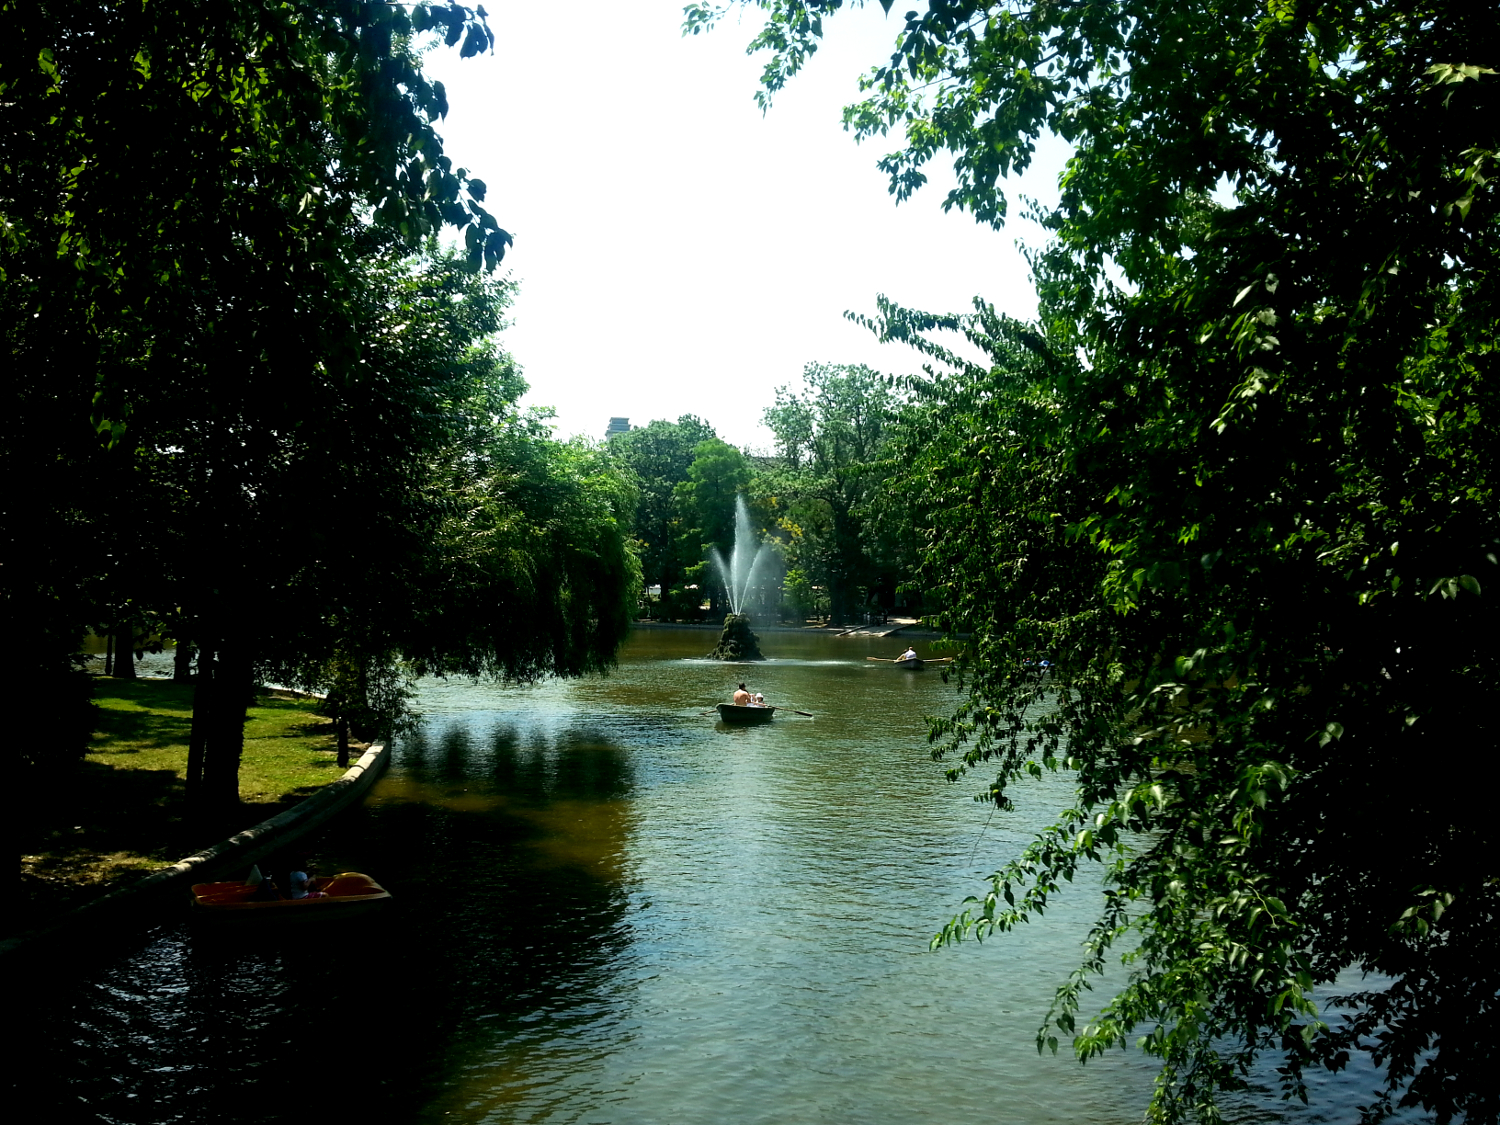 The Cismigiu Gardens in Bucharest